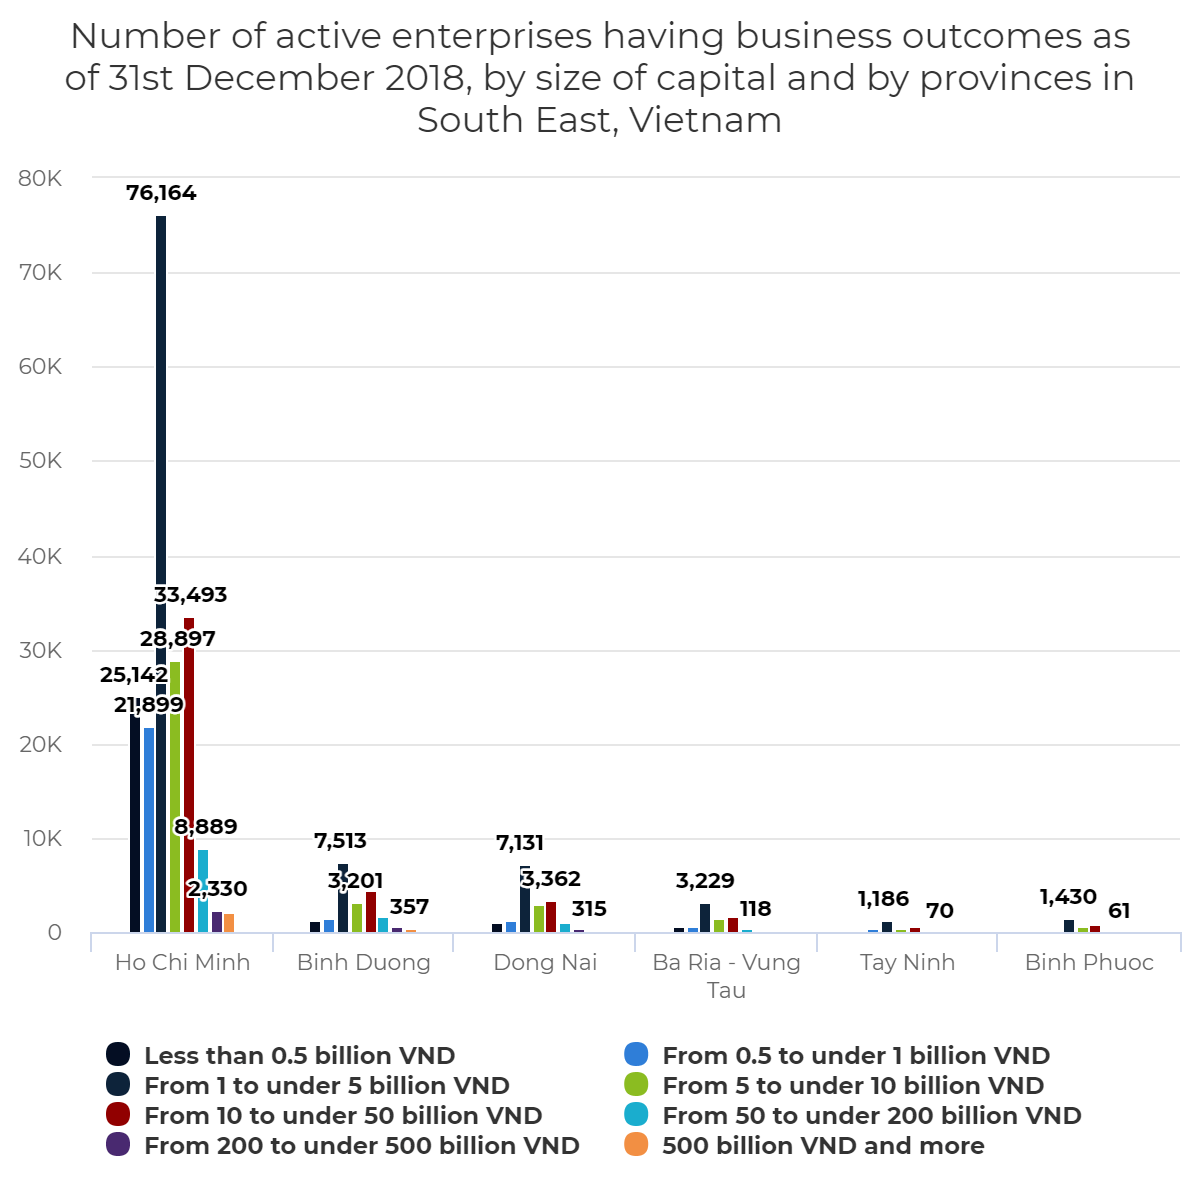 Number of active enterprises having business outcomes as of 31st December 2018, by size of capital and by provinces in South East, Vietnam